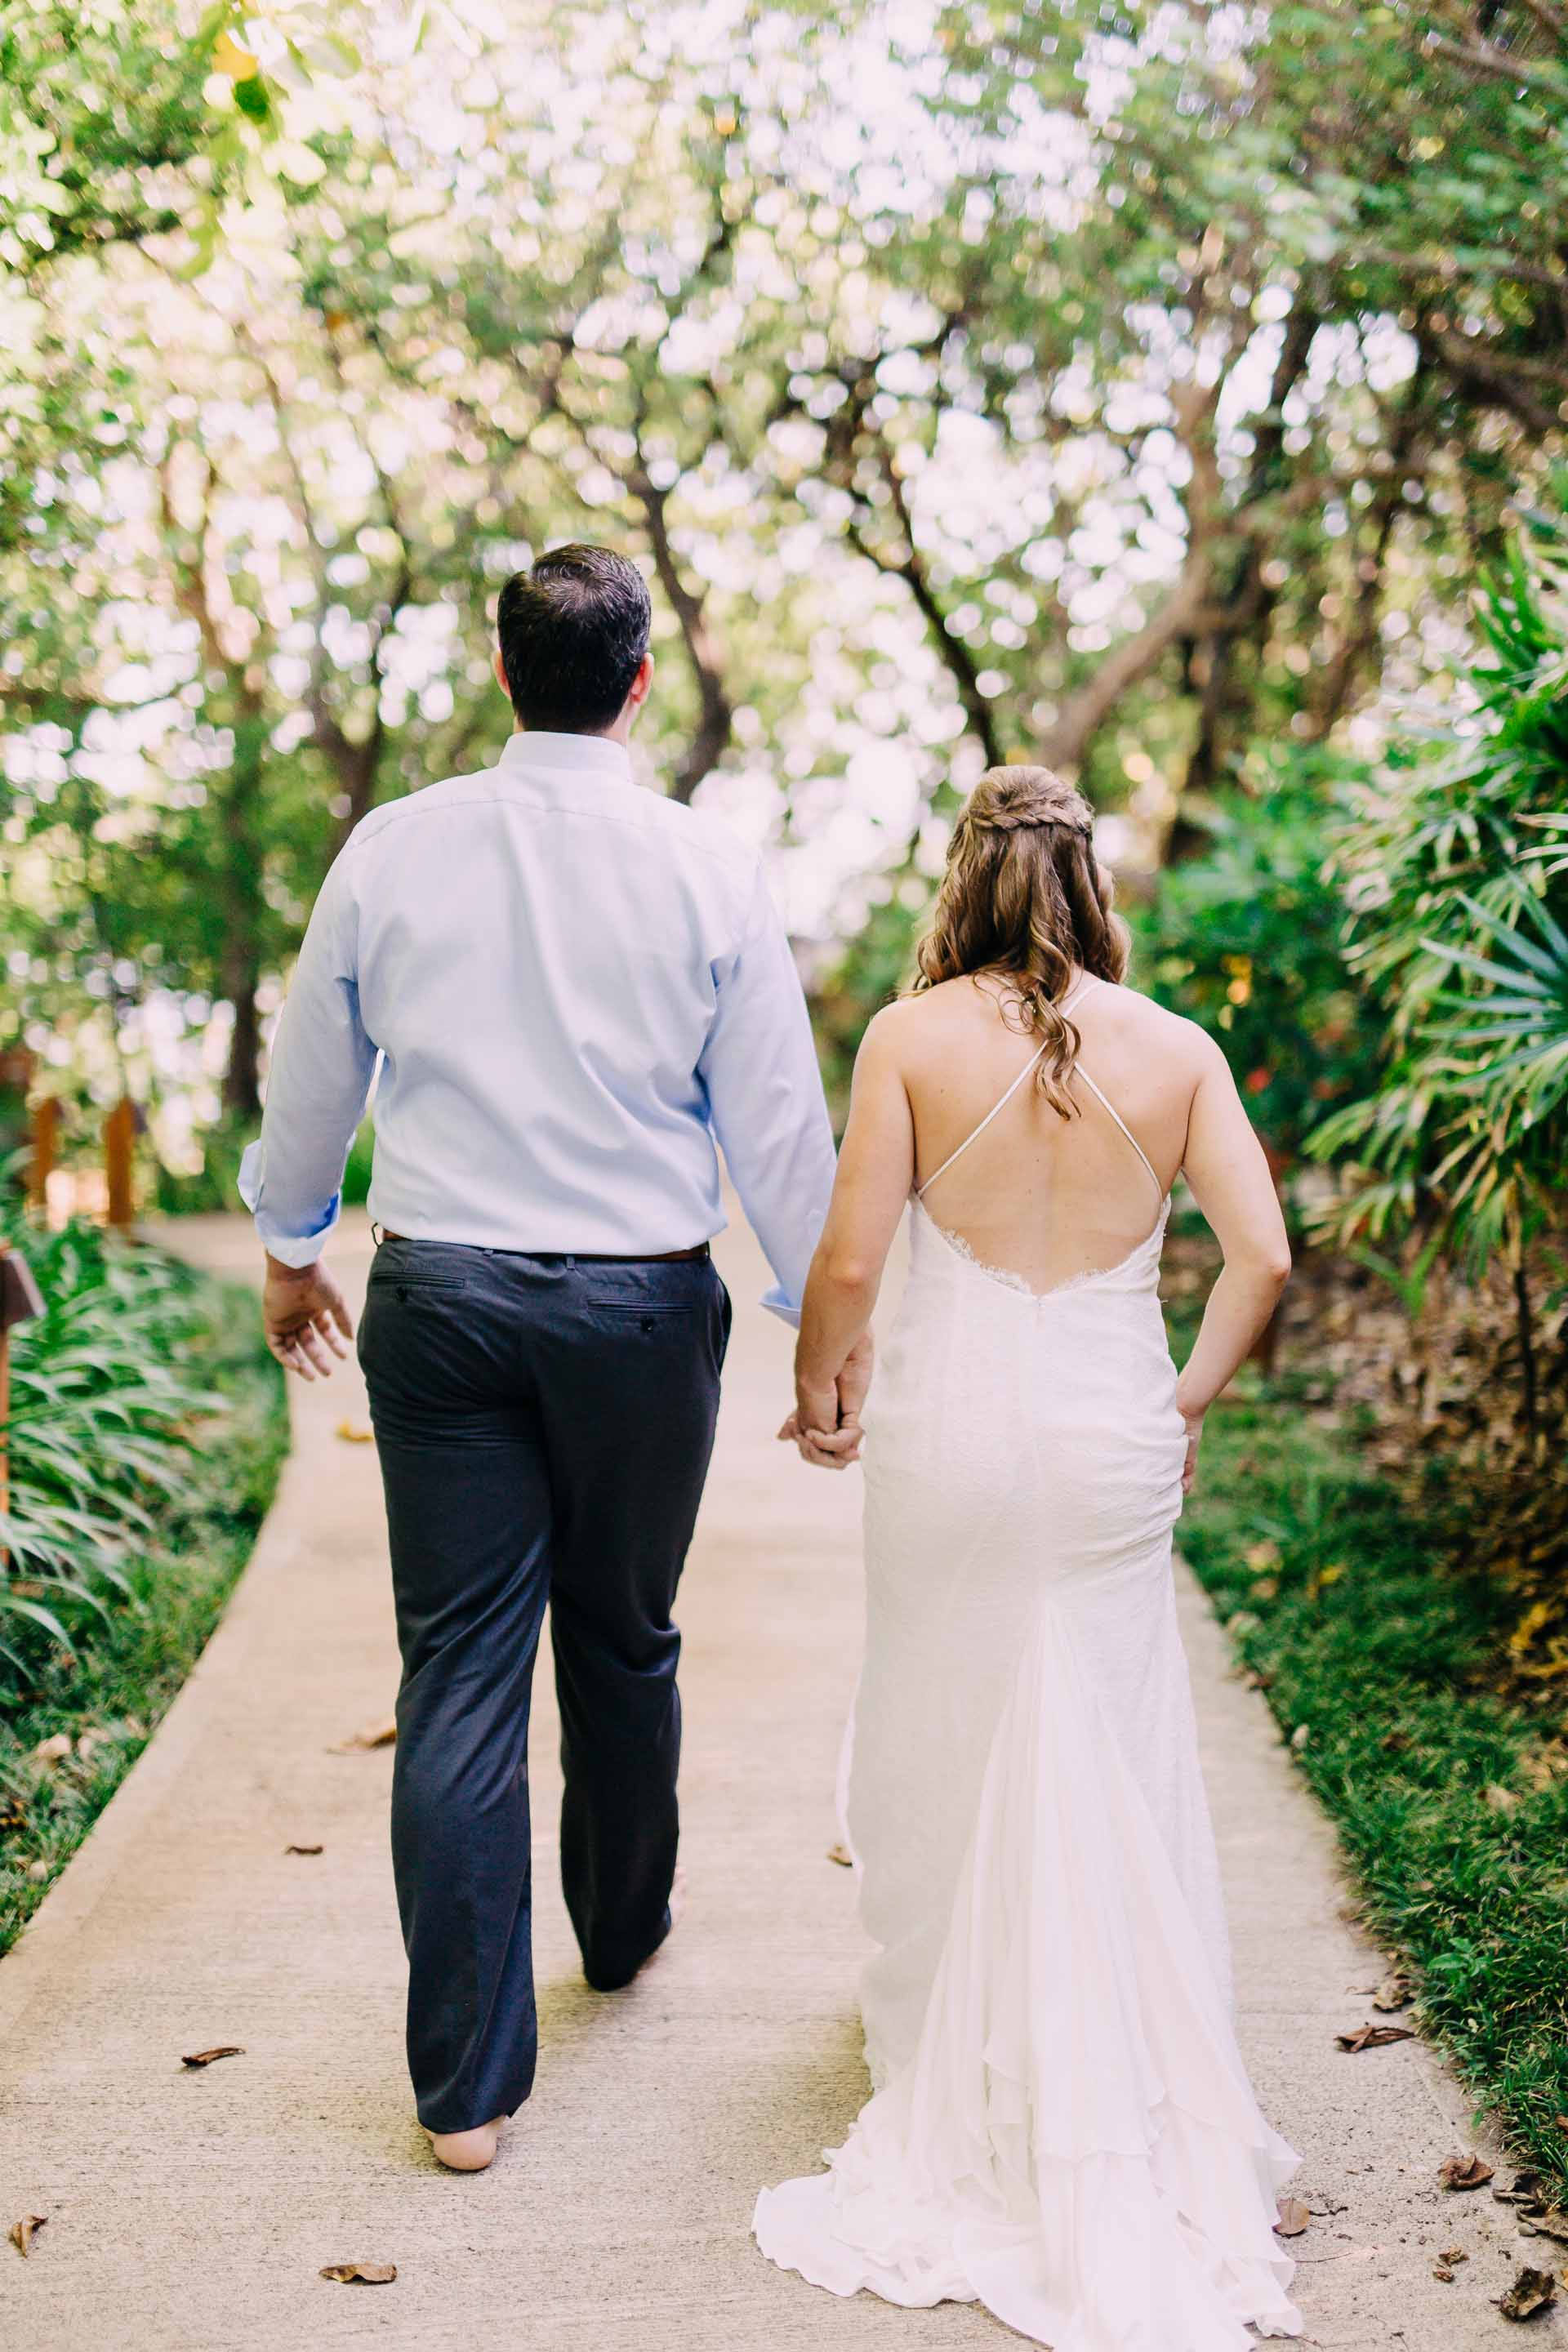 Couple hand in hand ready to get married in Fiji.